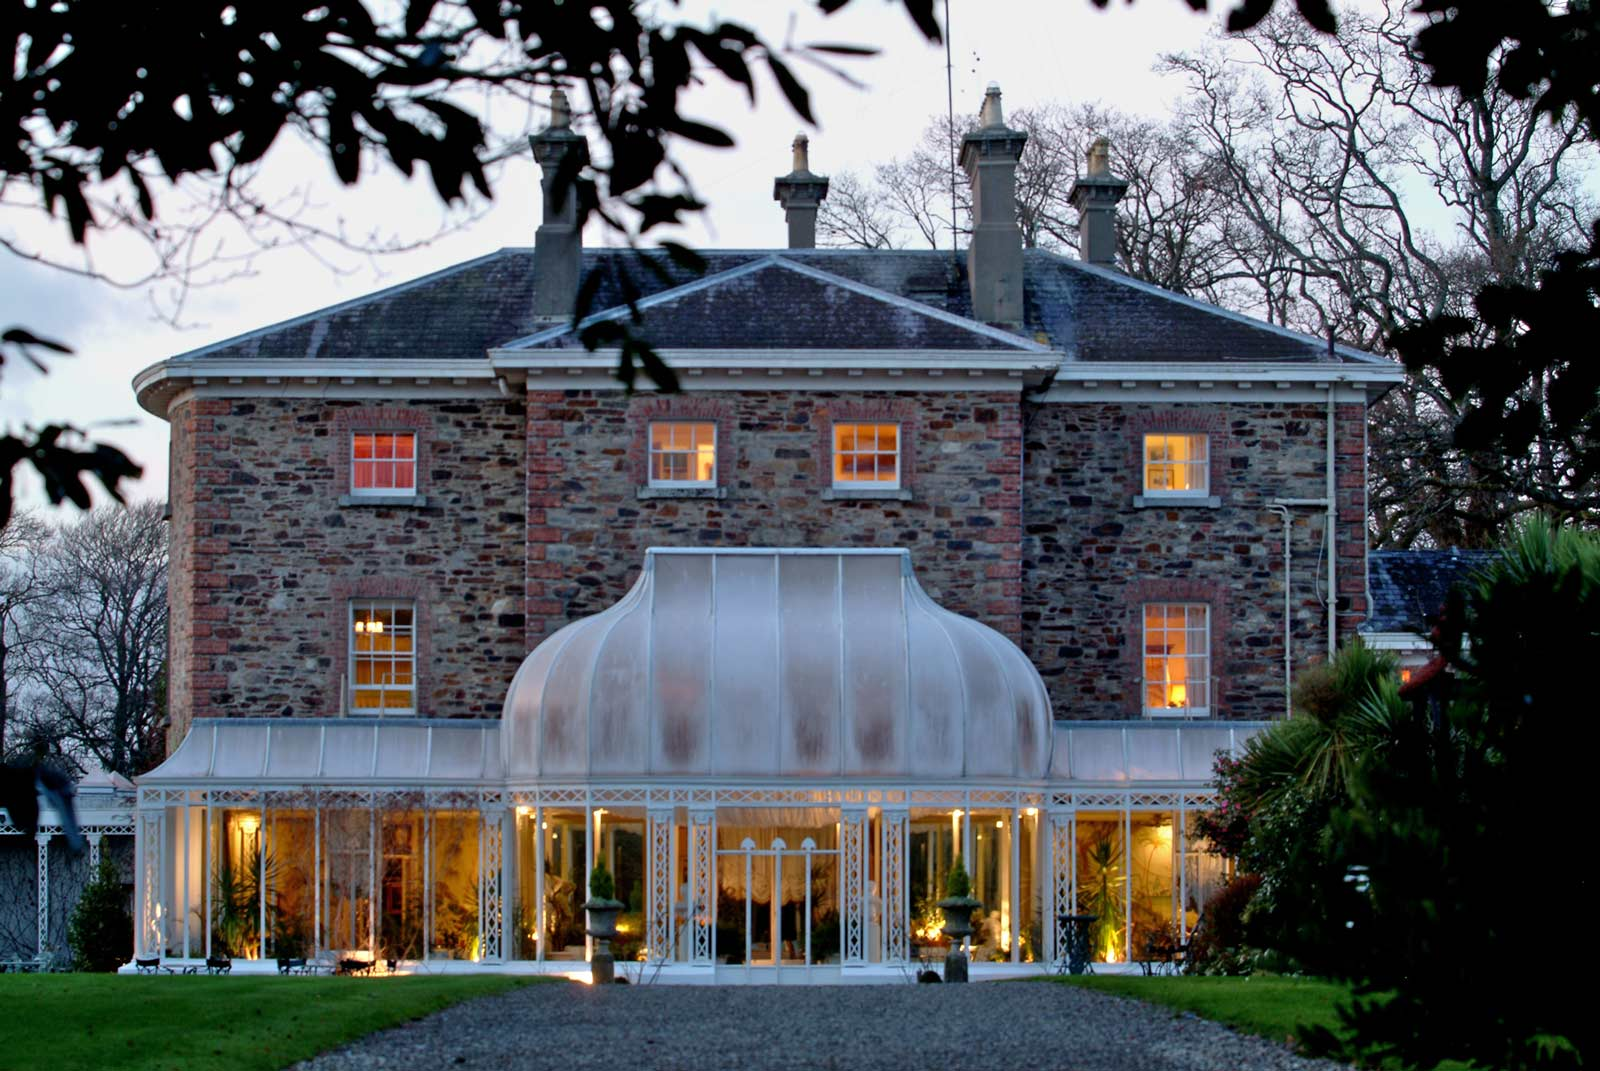 Marlfield House Luxury Hotel in Gorey, Co Wexford Ireland